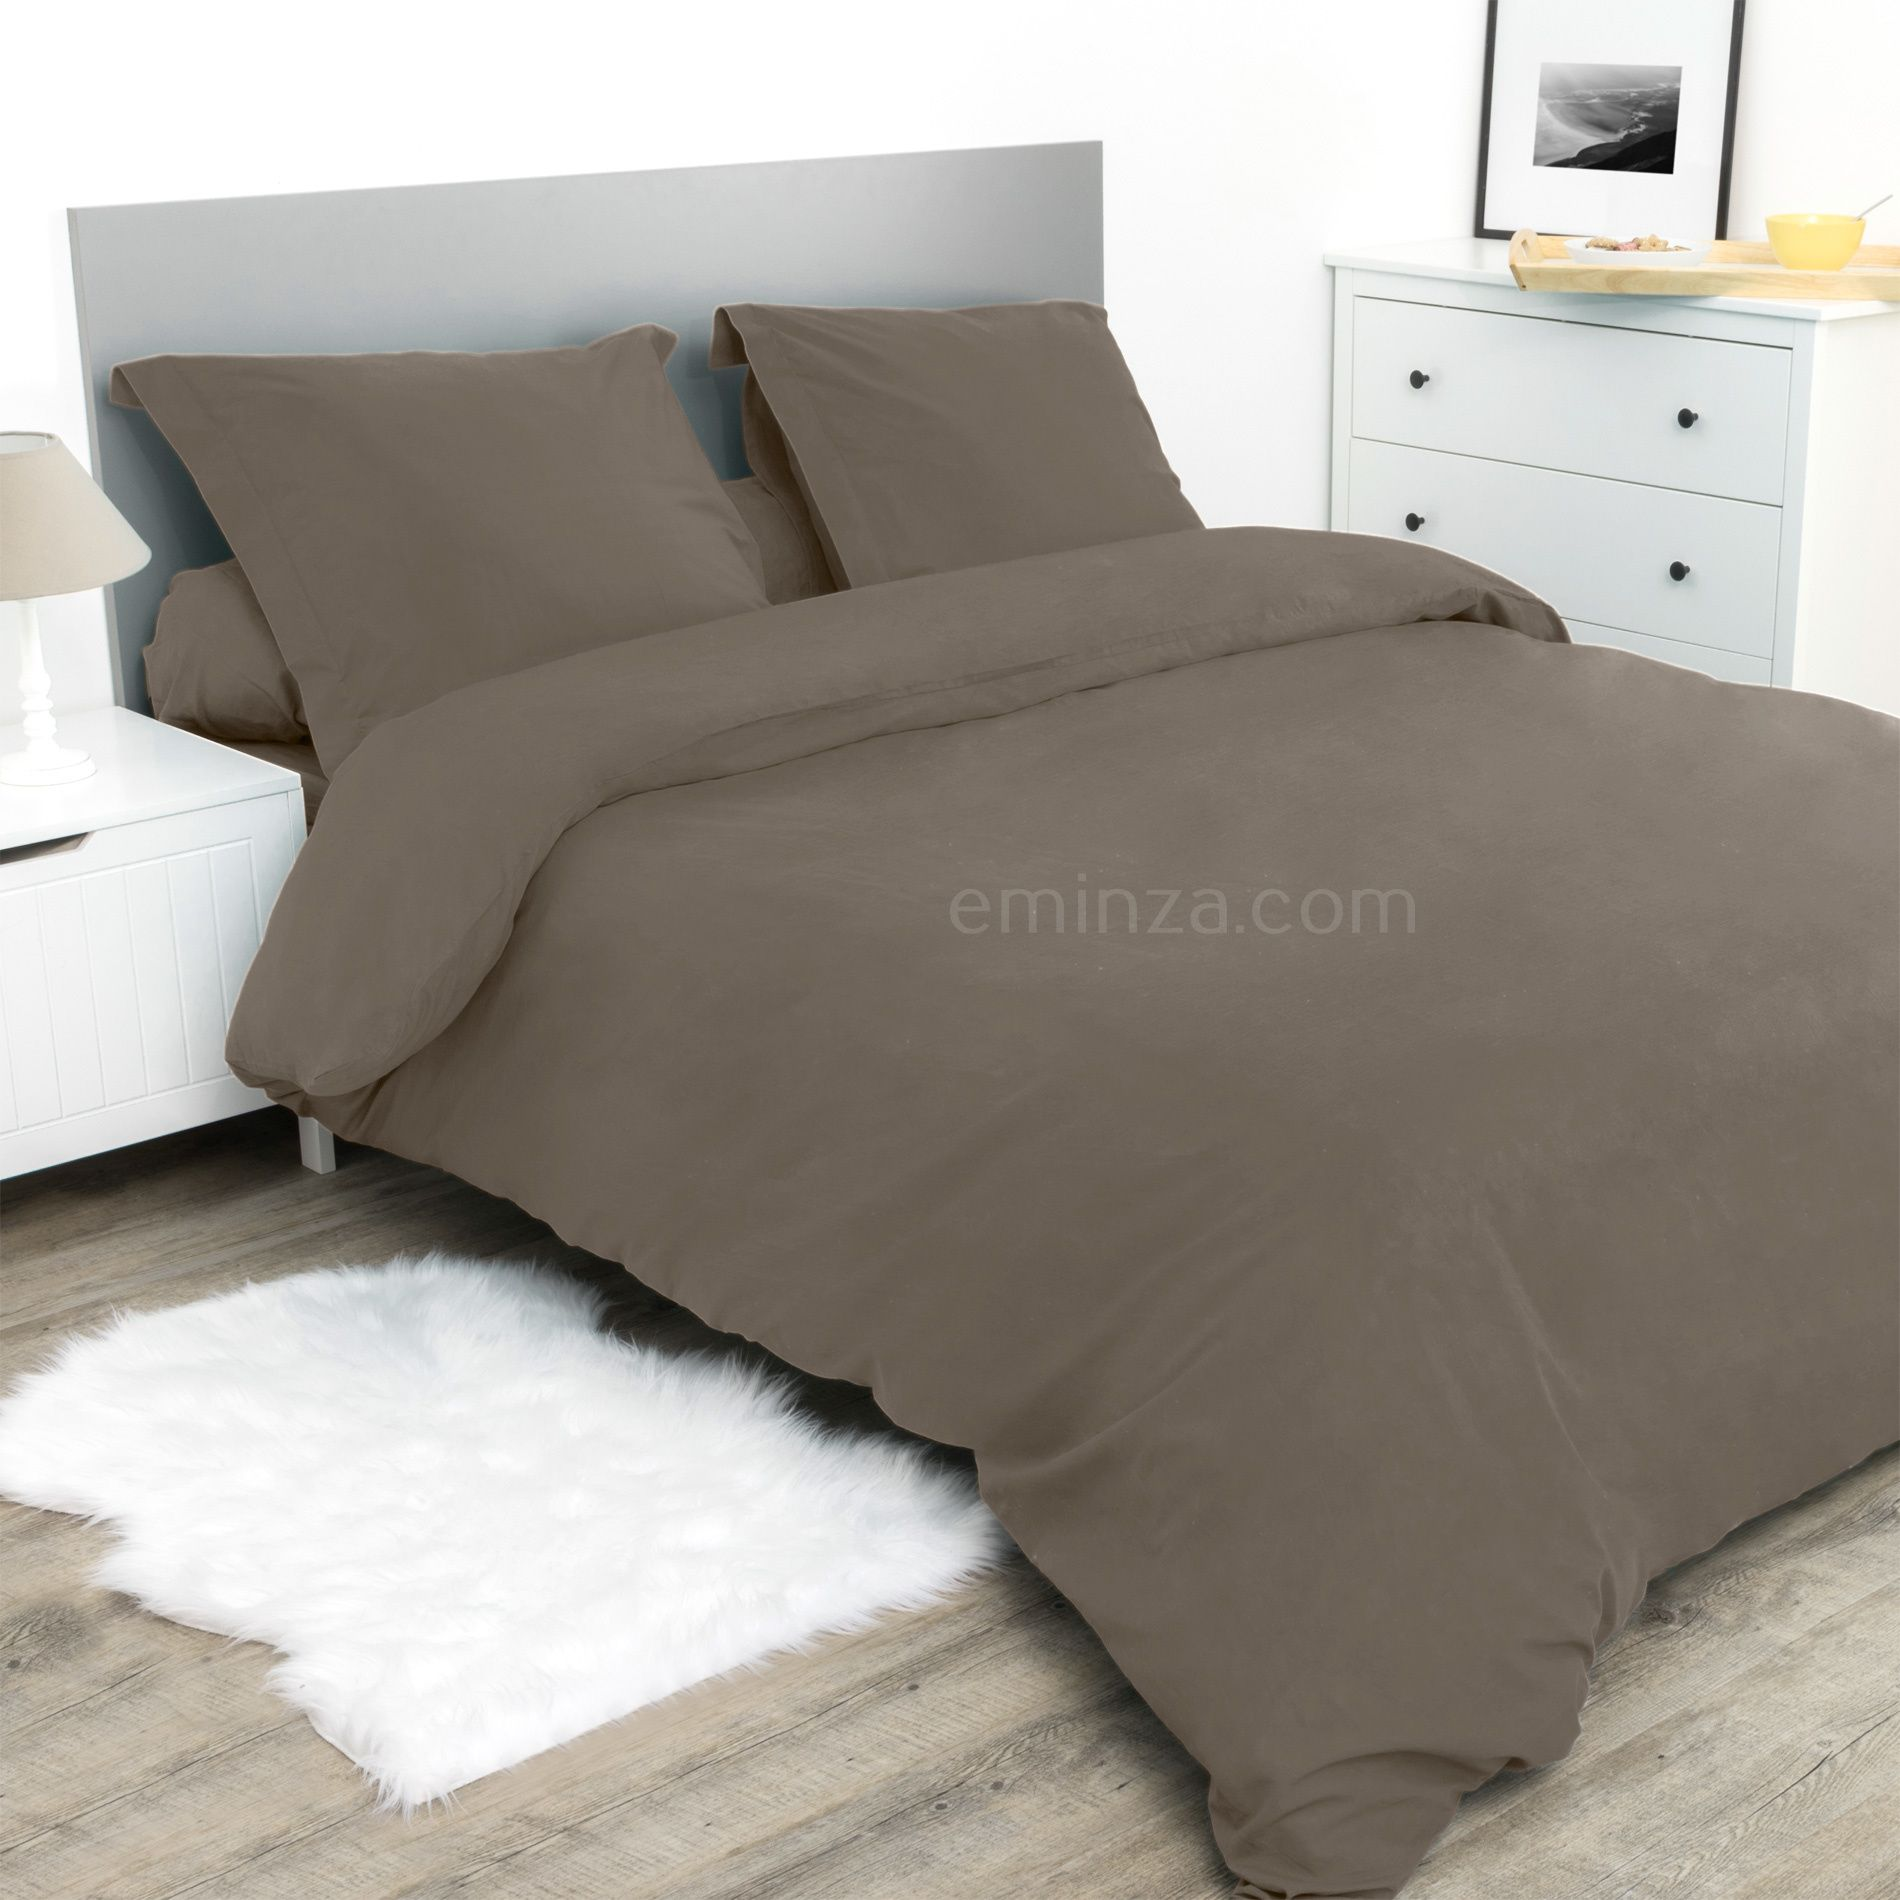 drap housse 90 cm confort taupe drap housse eminza. Black Bedroom Furniture Sets. Home Design Ideas